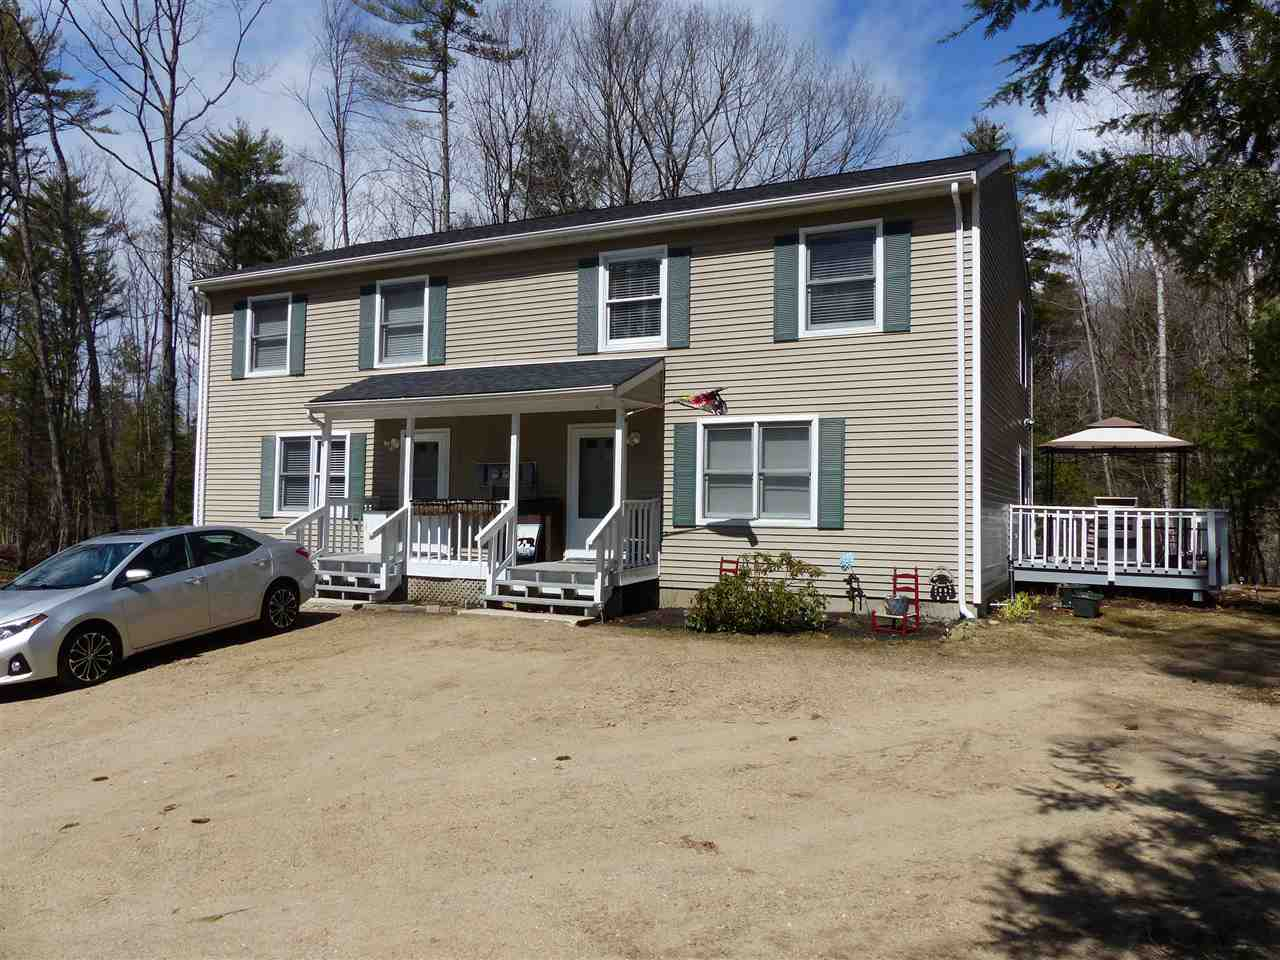 MOULTONBOROUGH NH Multi Family Homes for sale